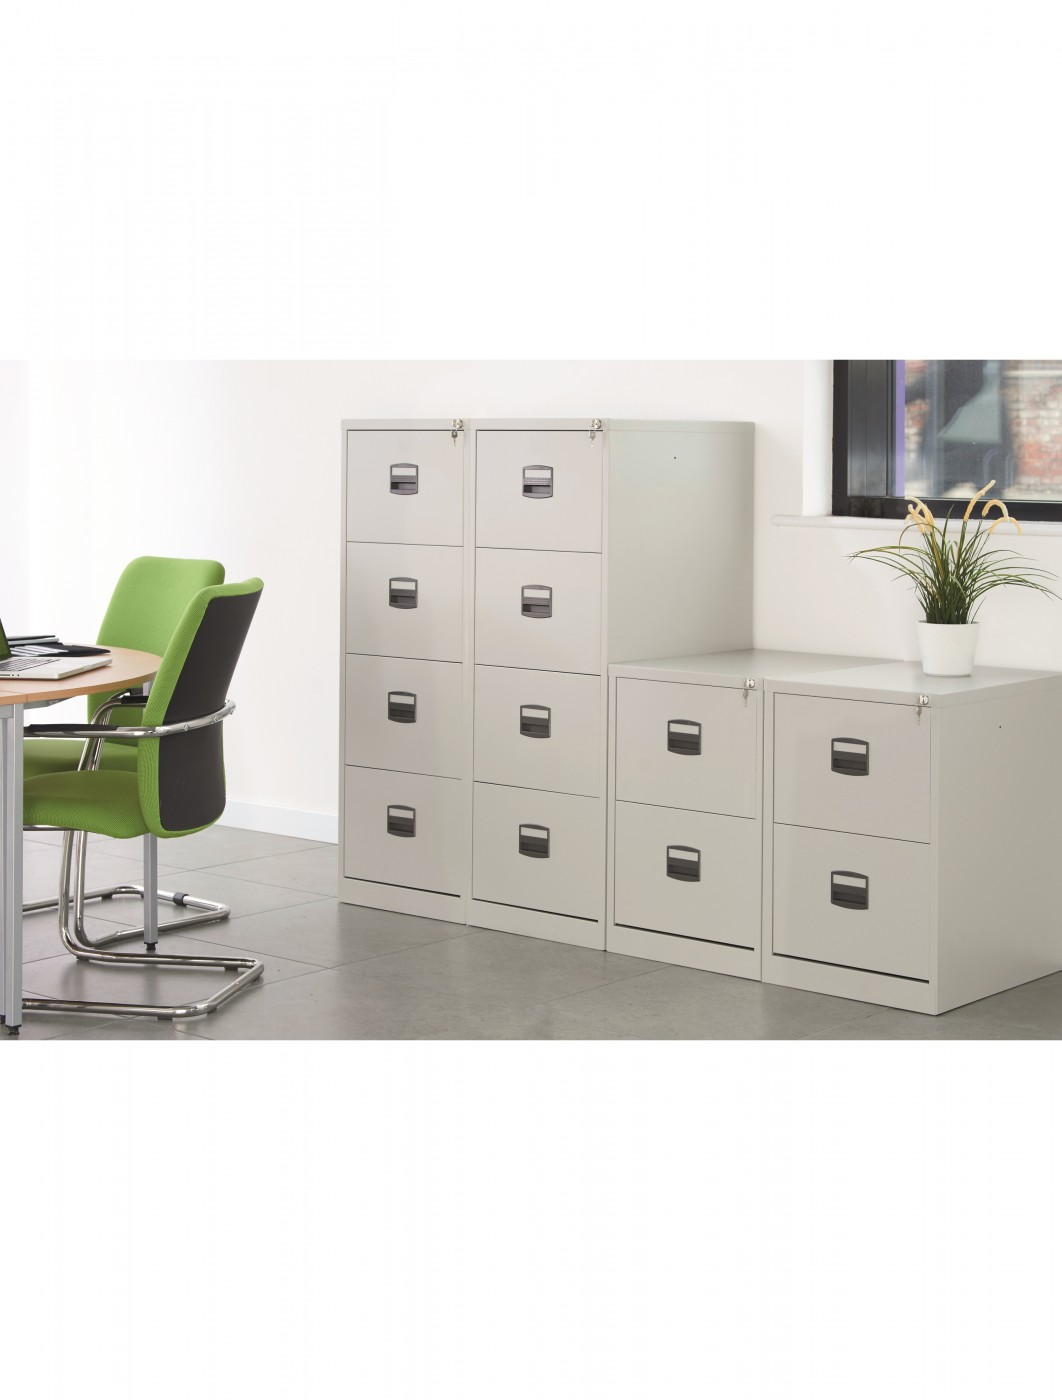 Bisley 2 Drawer Economy Contract Filing Cabinet BCF2